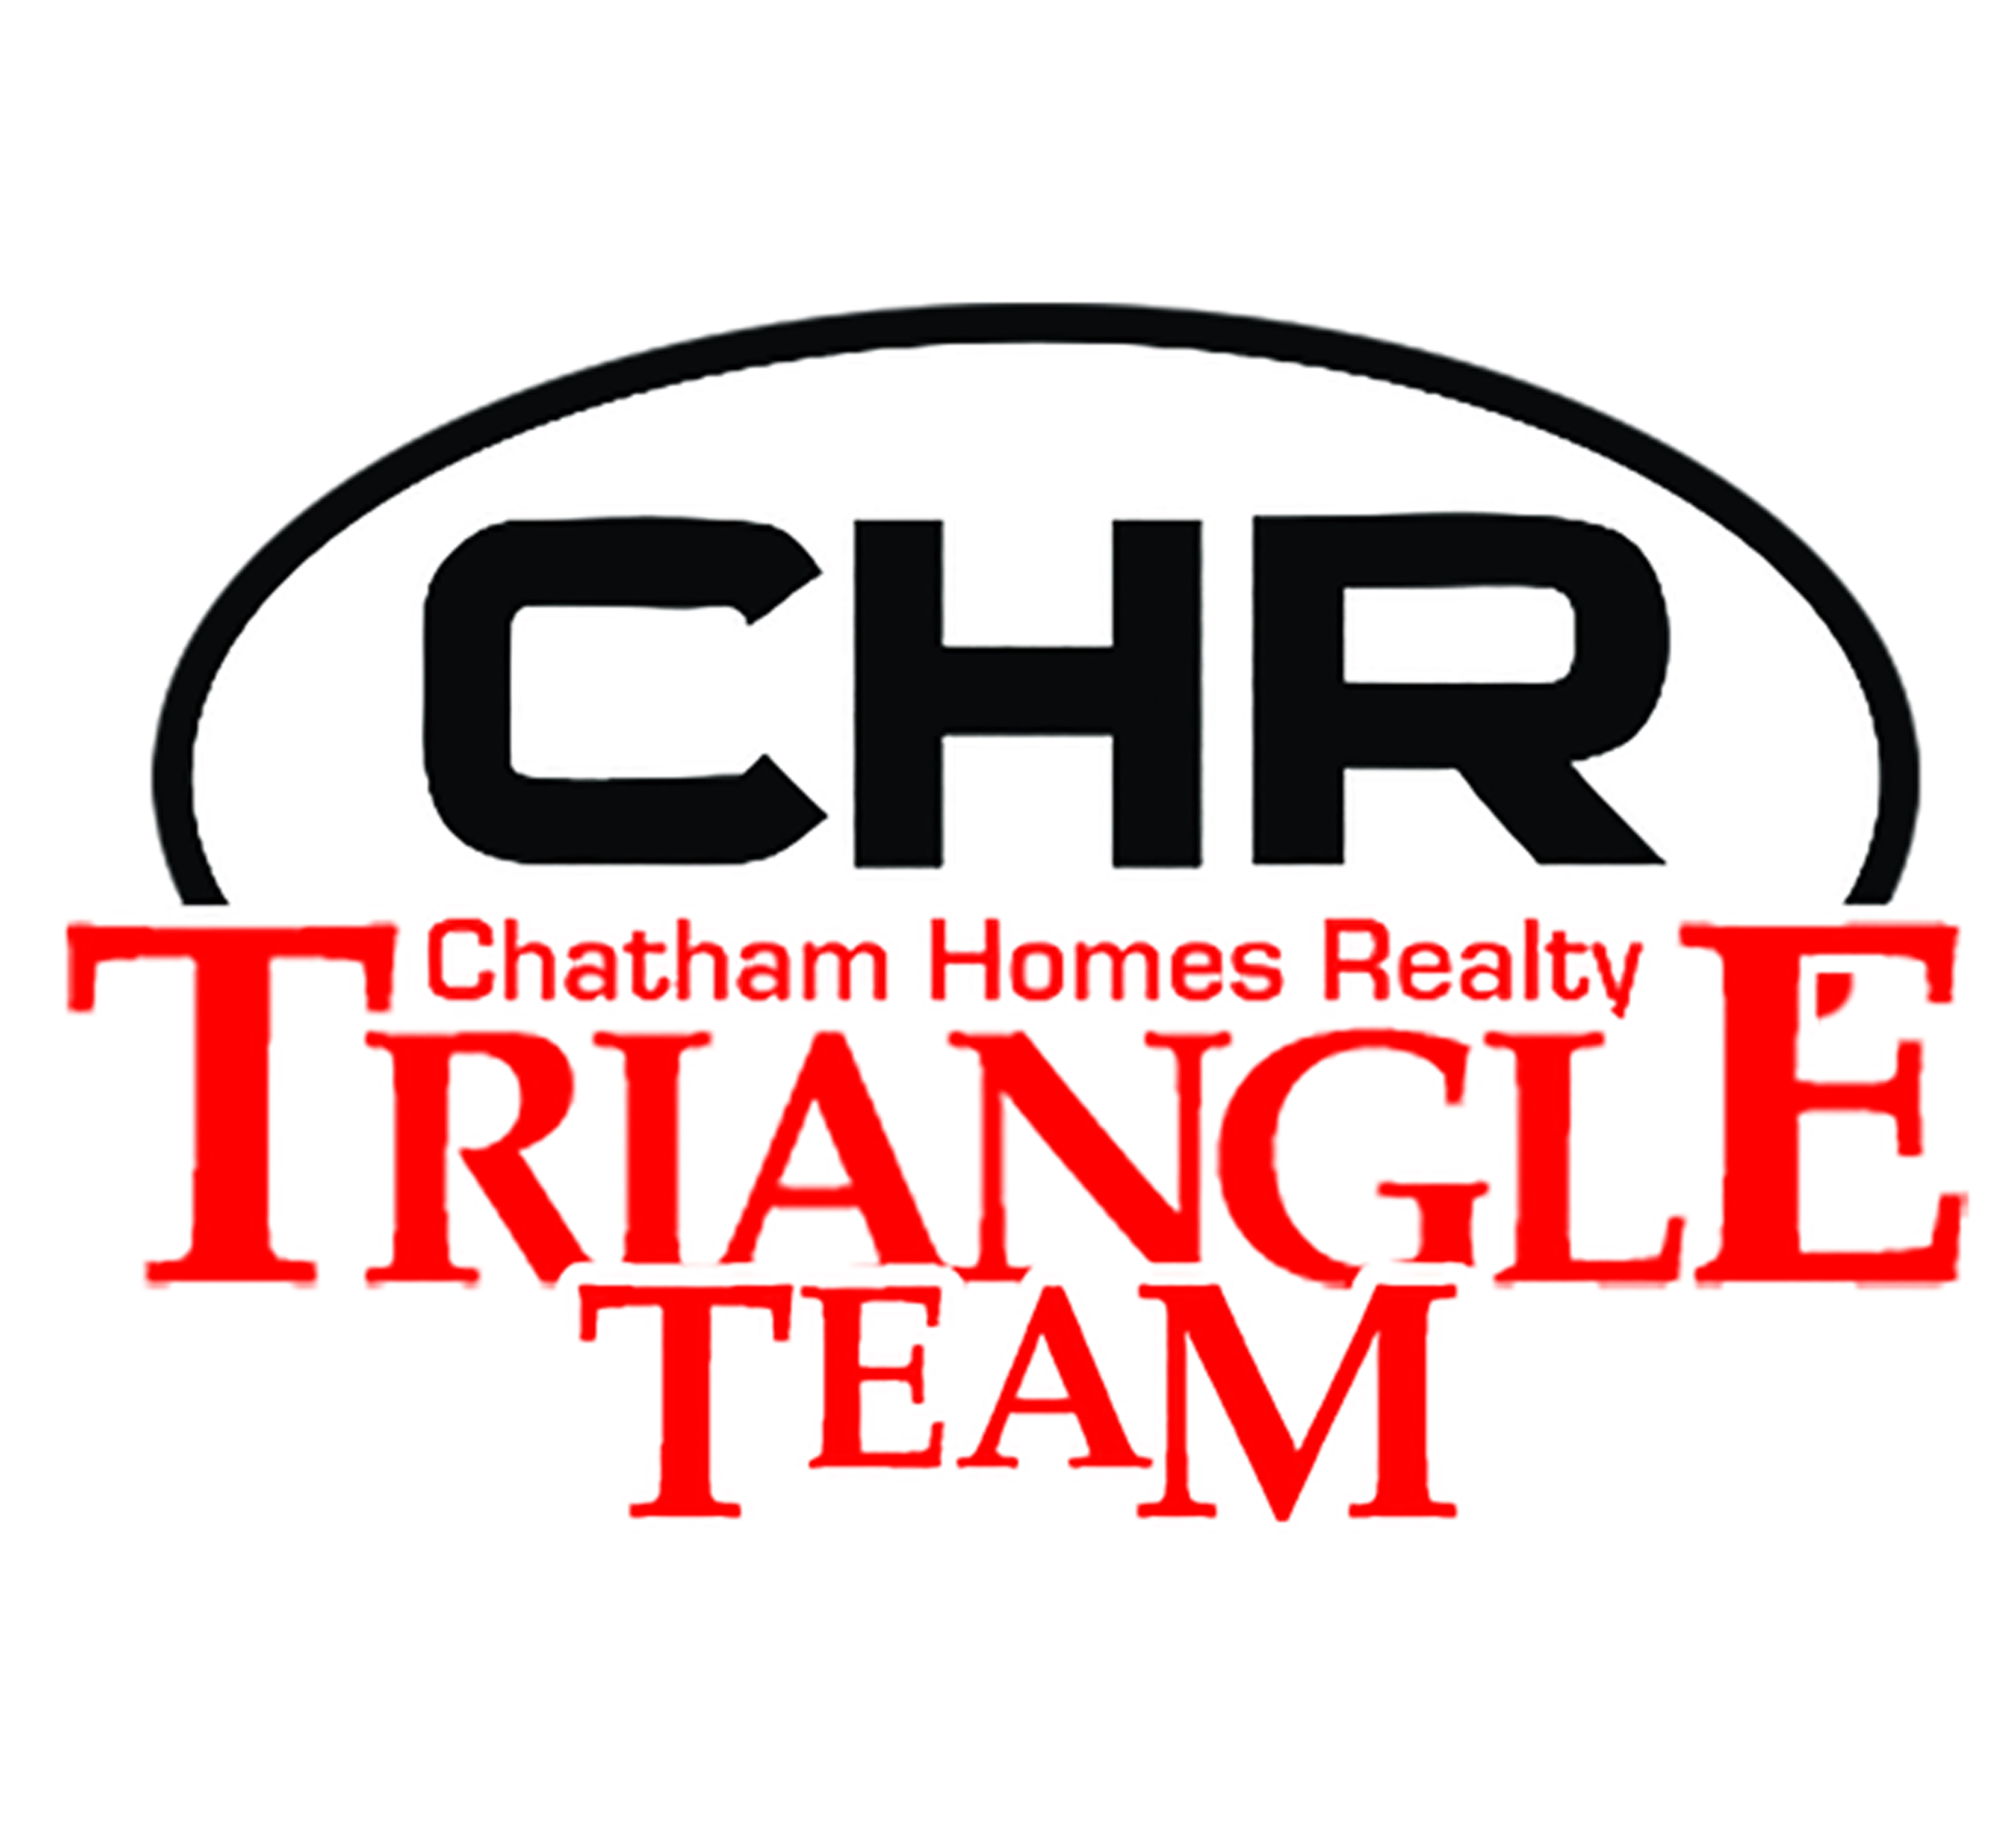 Chatham Homes Realty Triangle Team